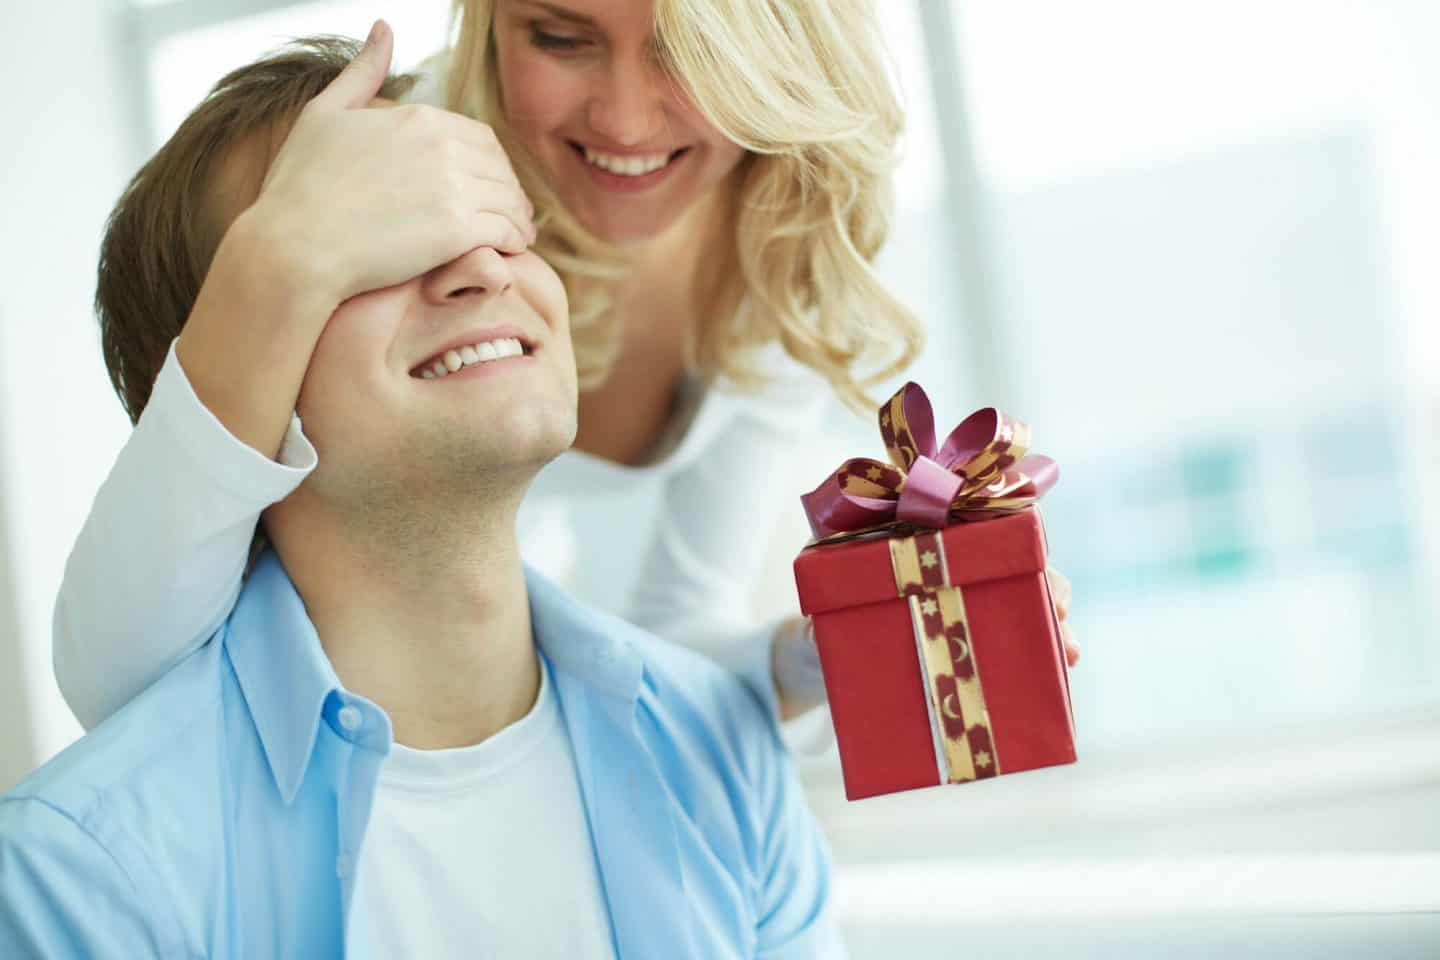 What Are Good Gifts for Him This Year